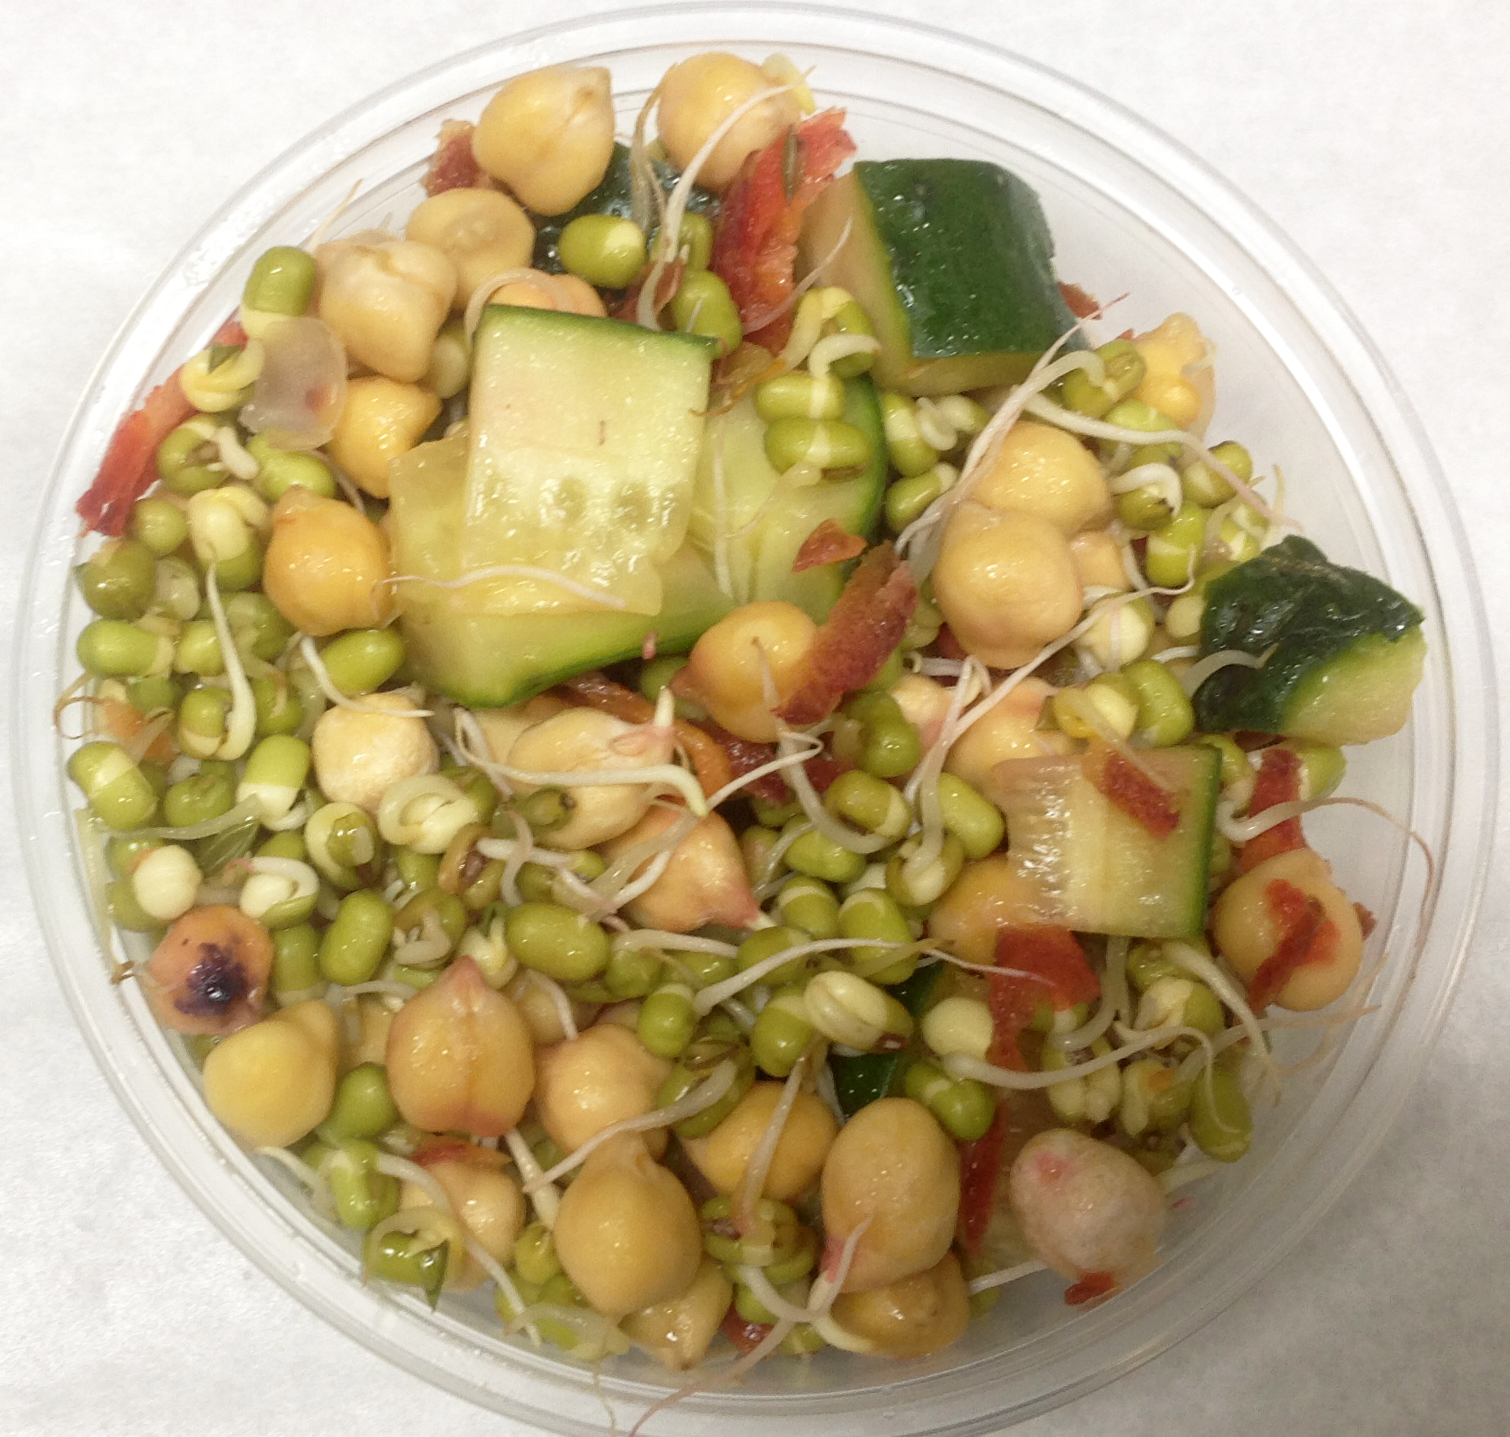 Sprouted mung beans and chickpeas, colorful heirloom carrots, cucumbers with a citrus dressing.